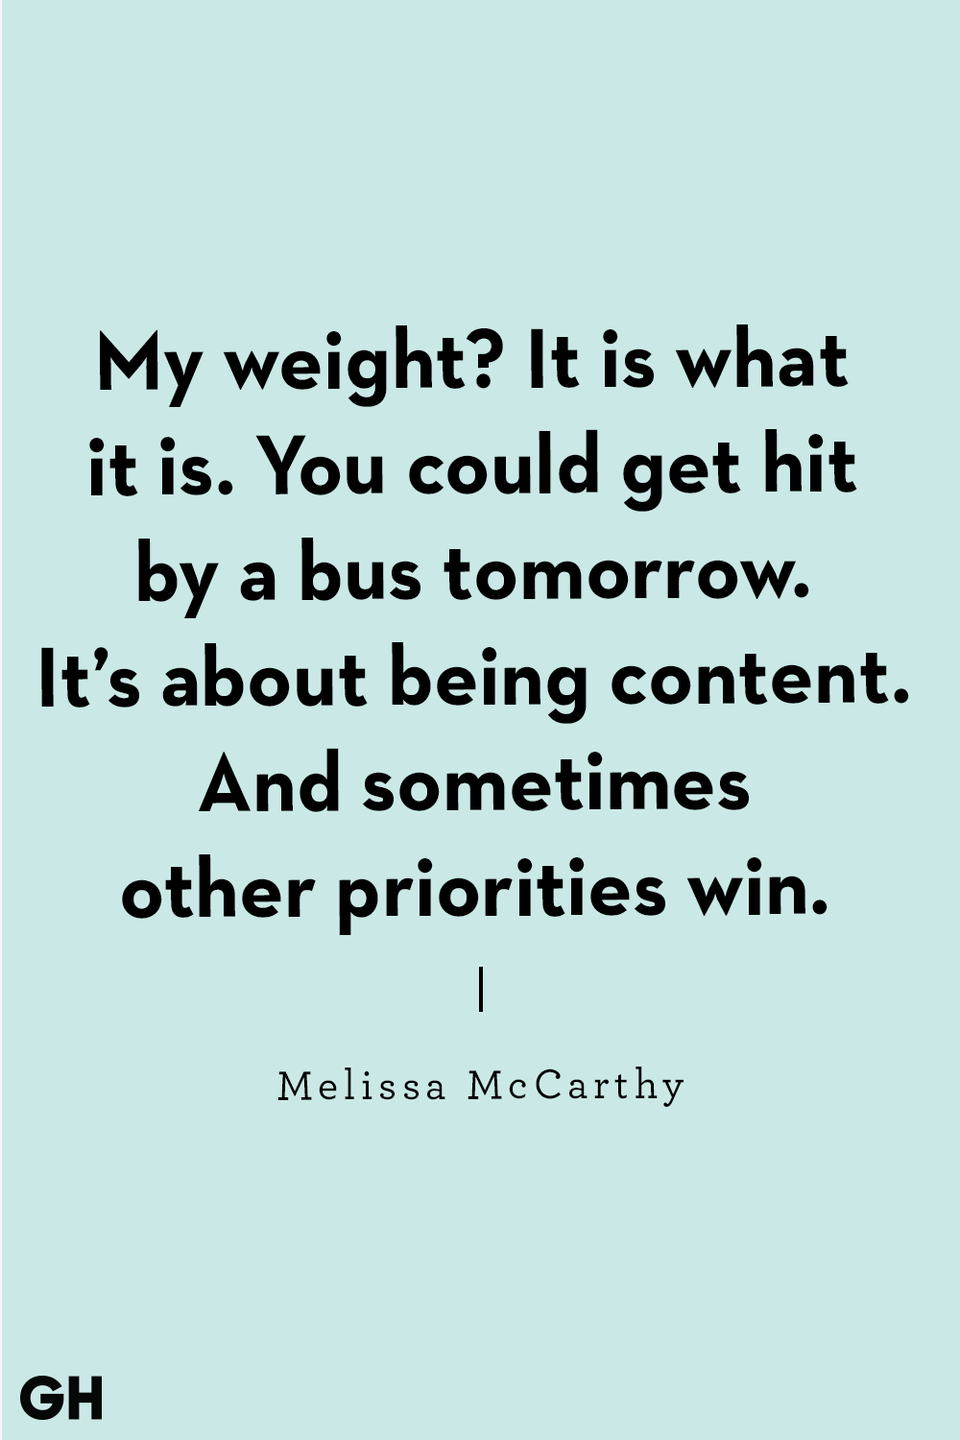 "<p>""My weight? It is what it is. You could get hit by a bus tomorrow. It's about being content. And sometimes other priorities win."" </p>"